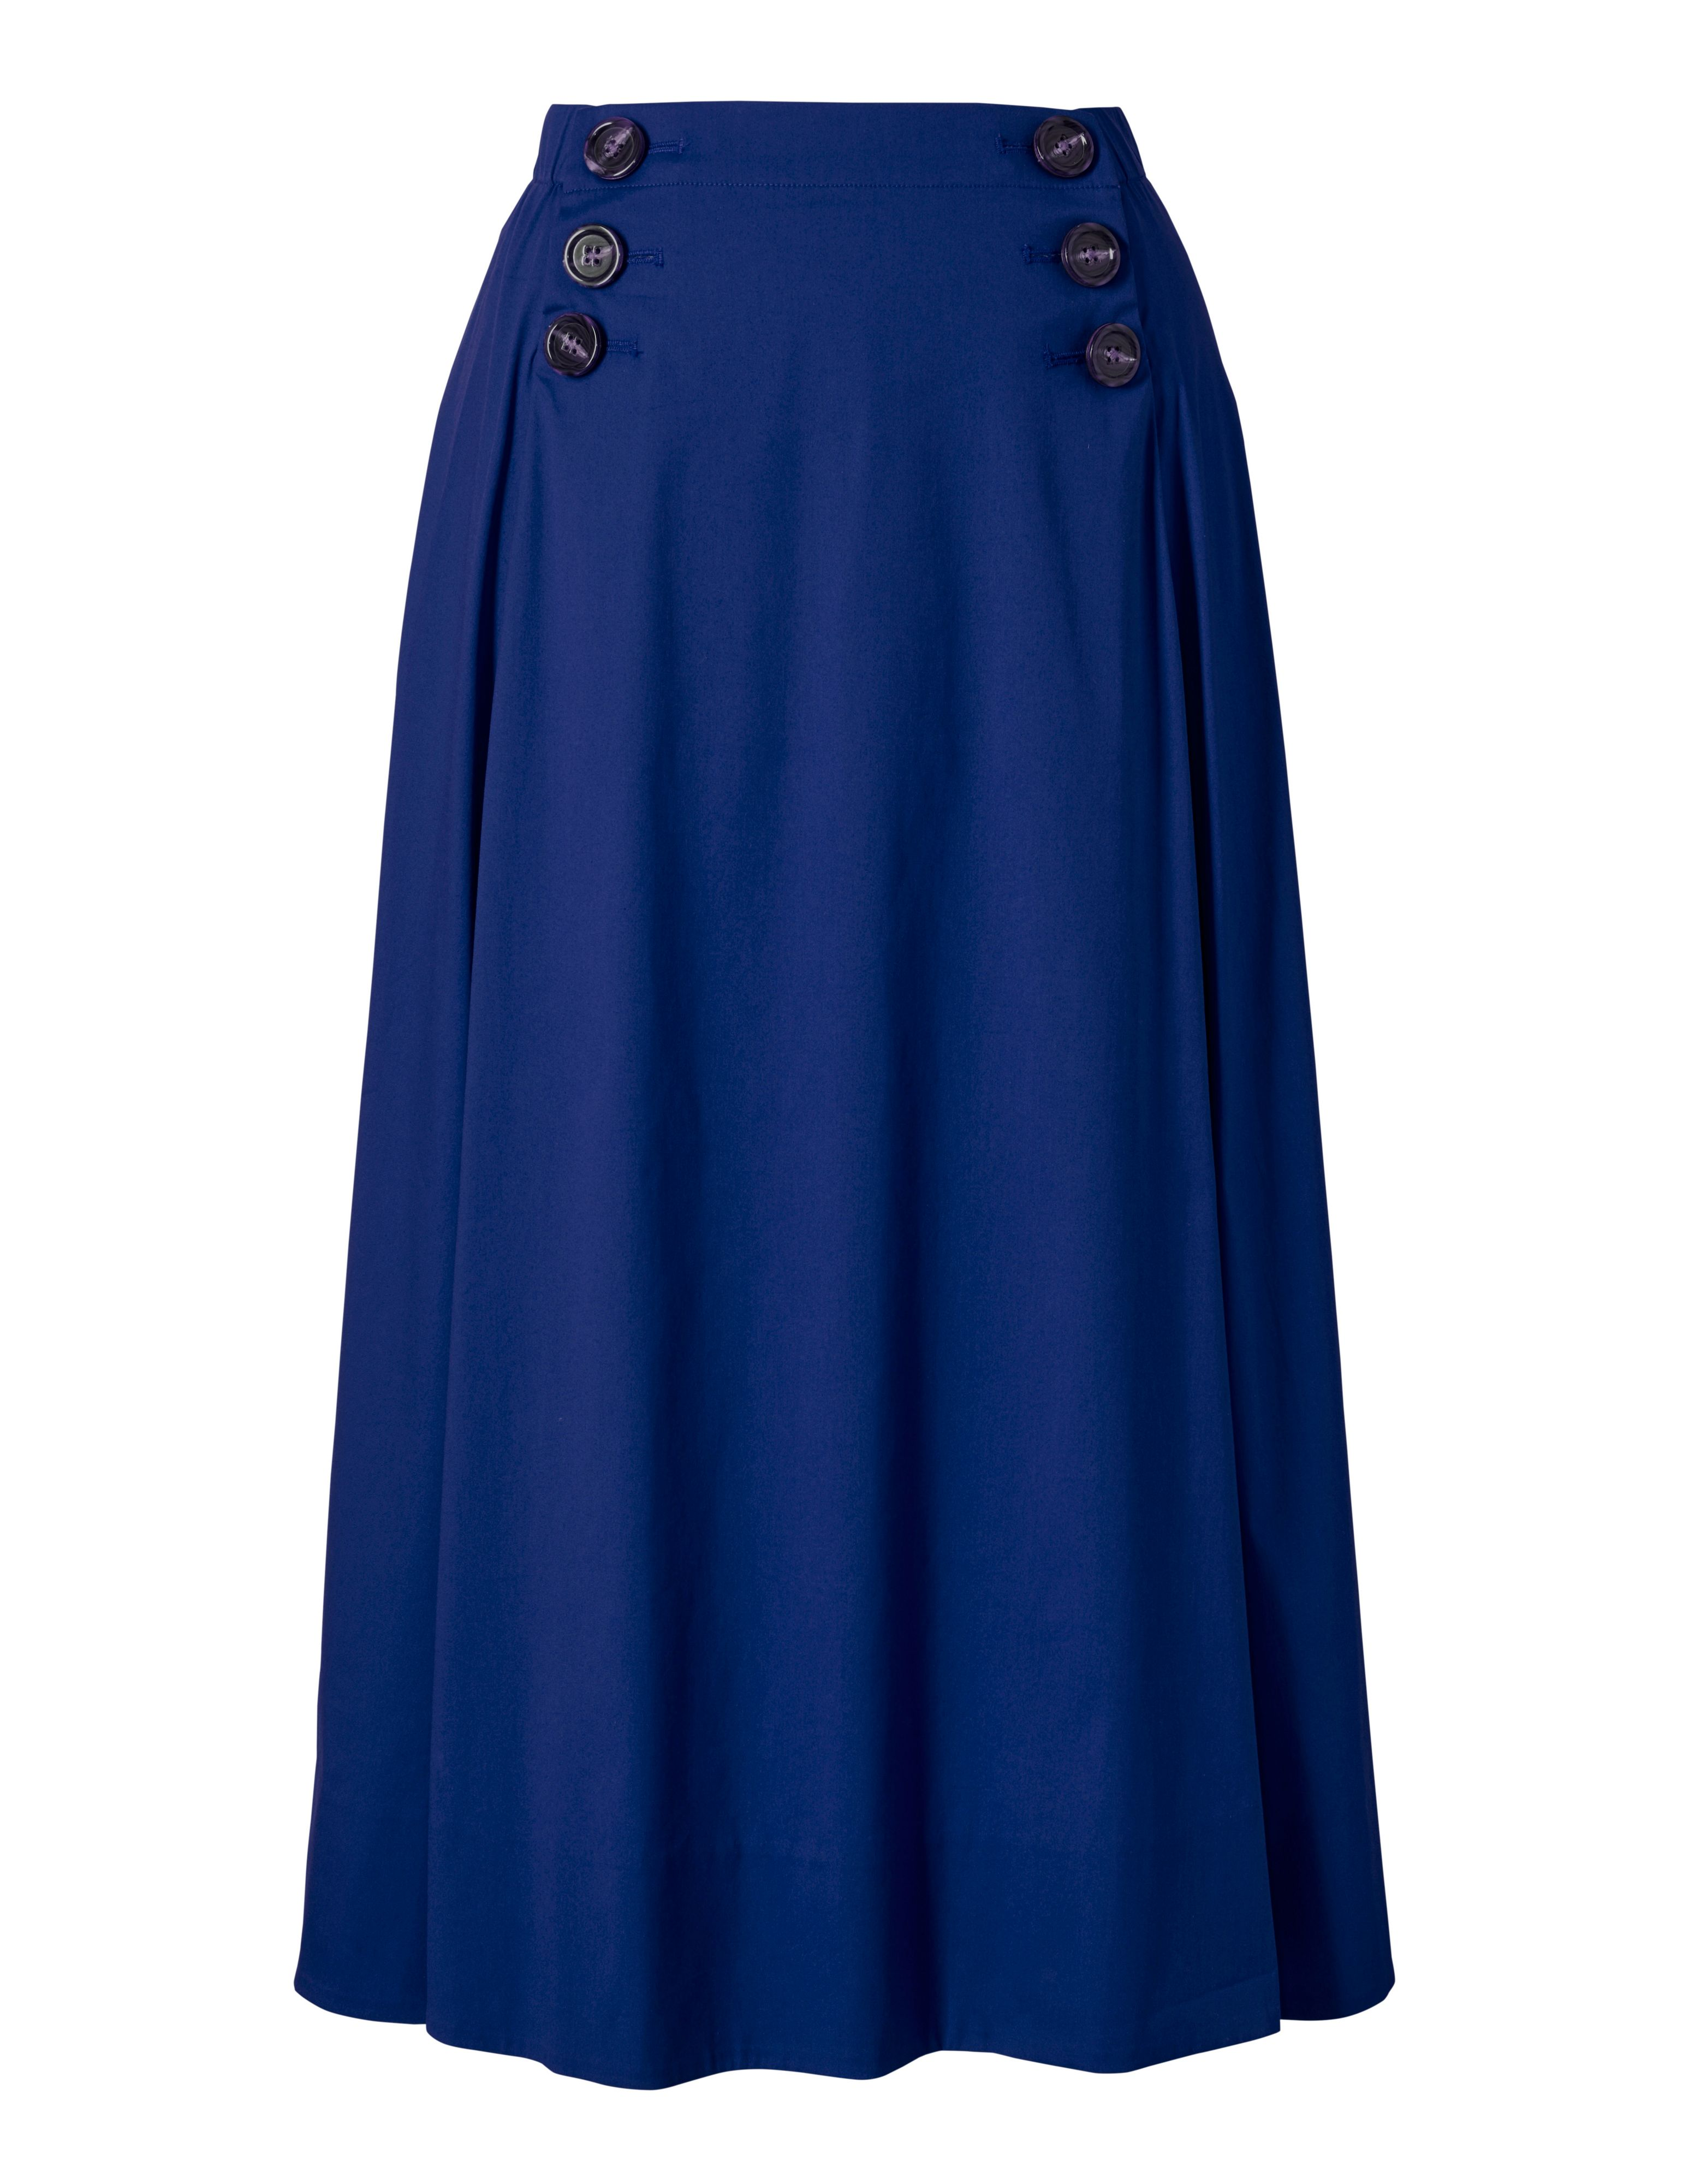 Winser London Cotton Poplin Circle Skirt, Blue